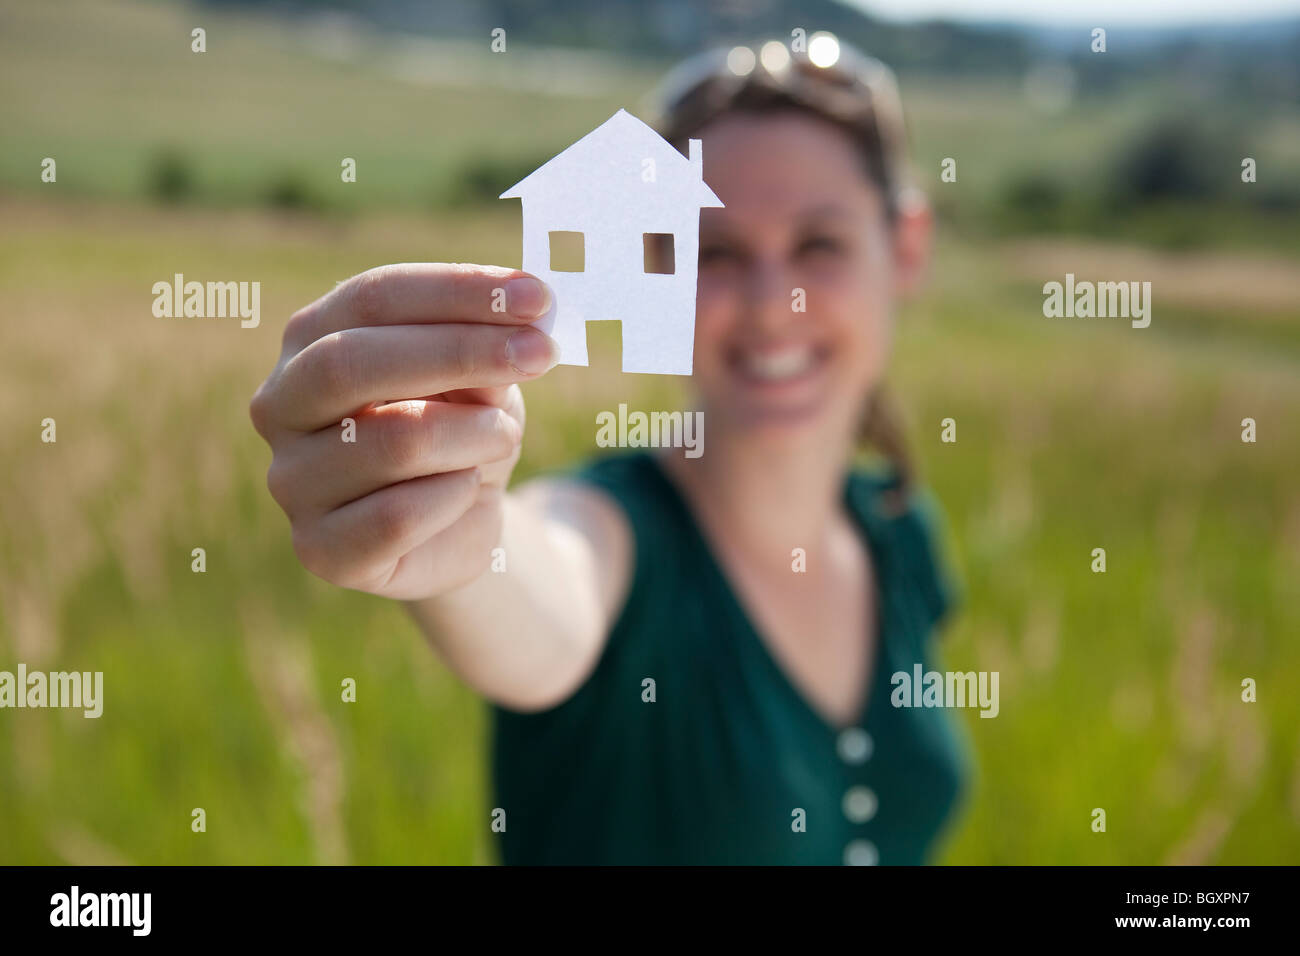 Woman raising cut-out paper house - Stock Image